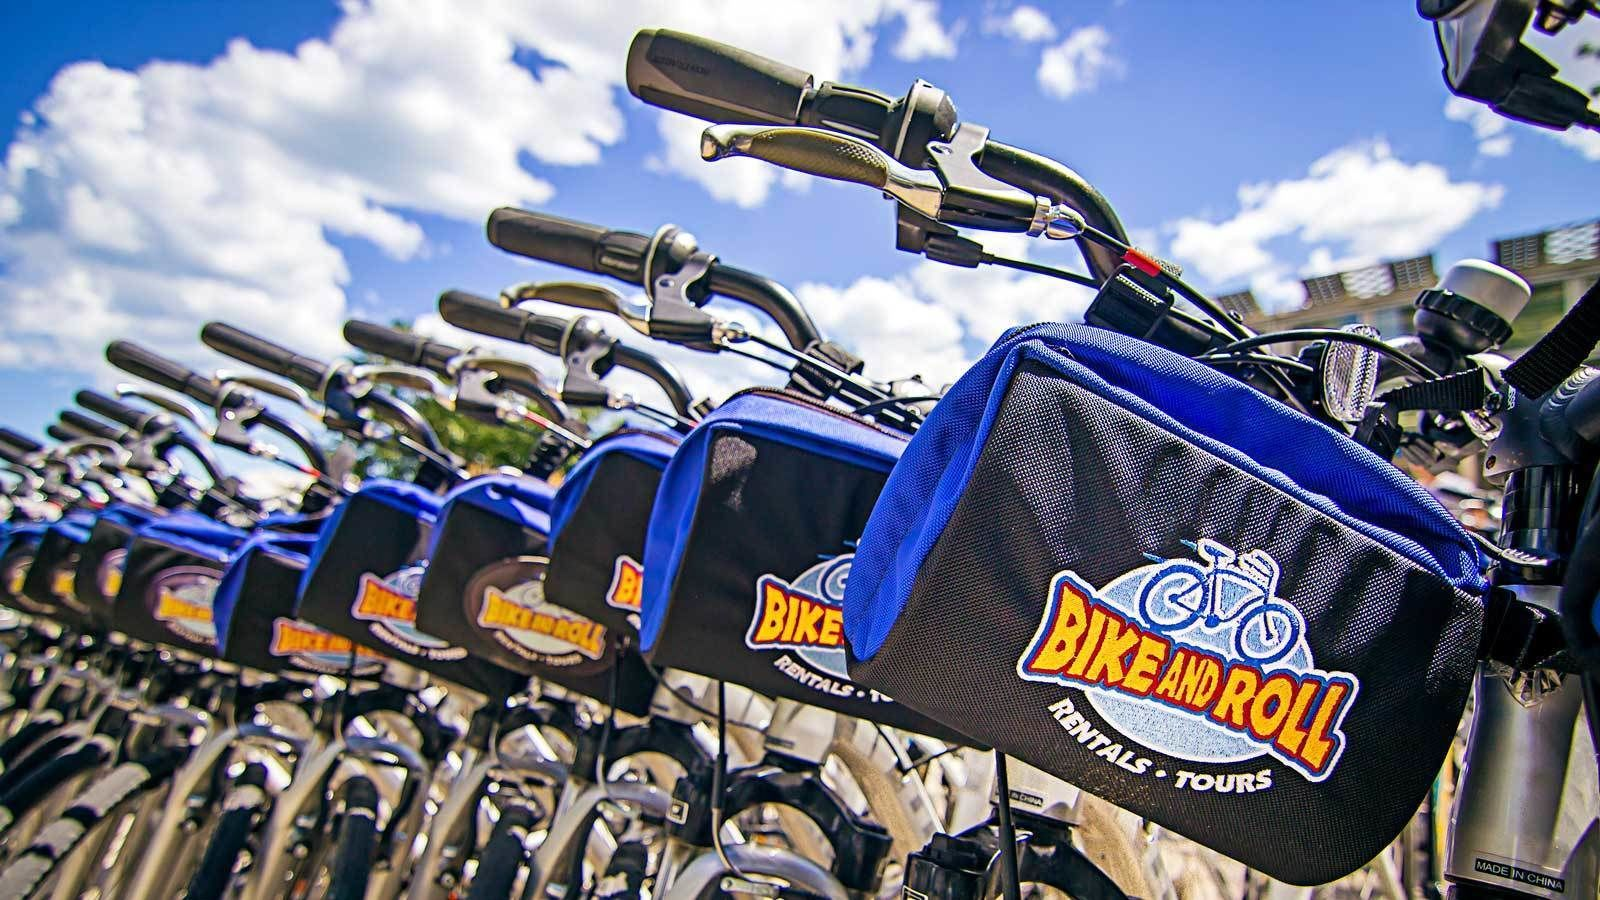 rows of rental bikes with storage pouches in Chicago